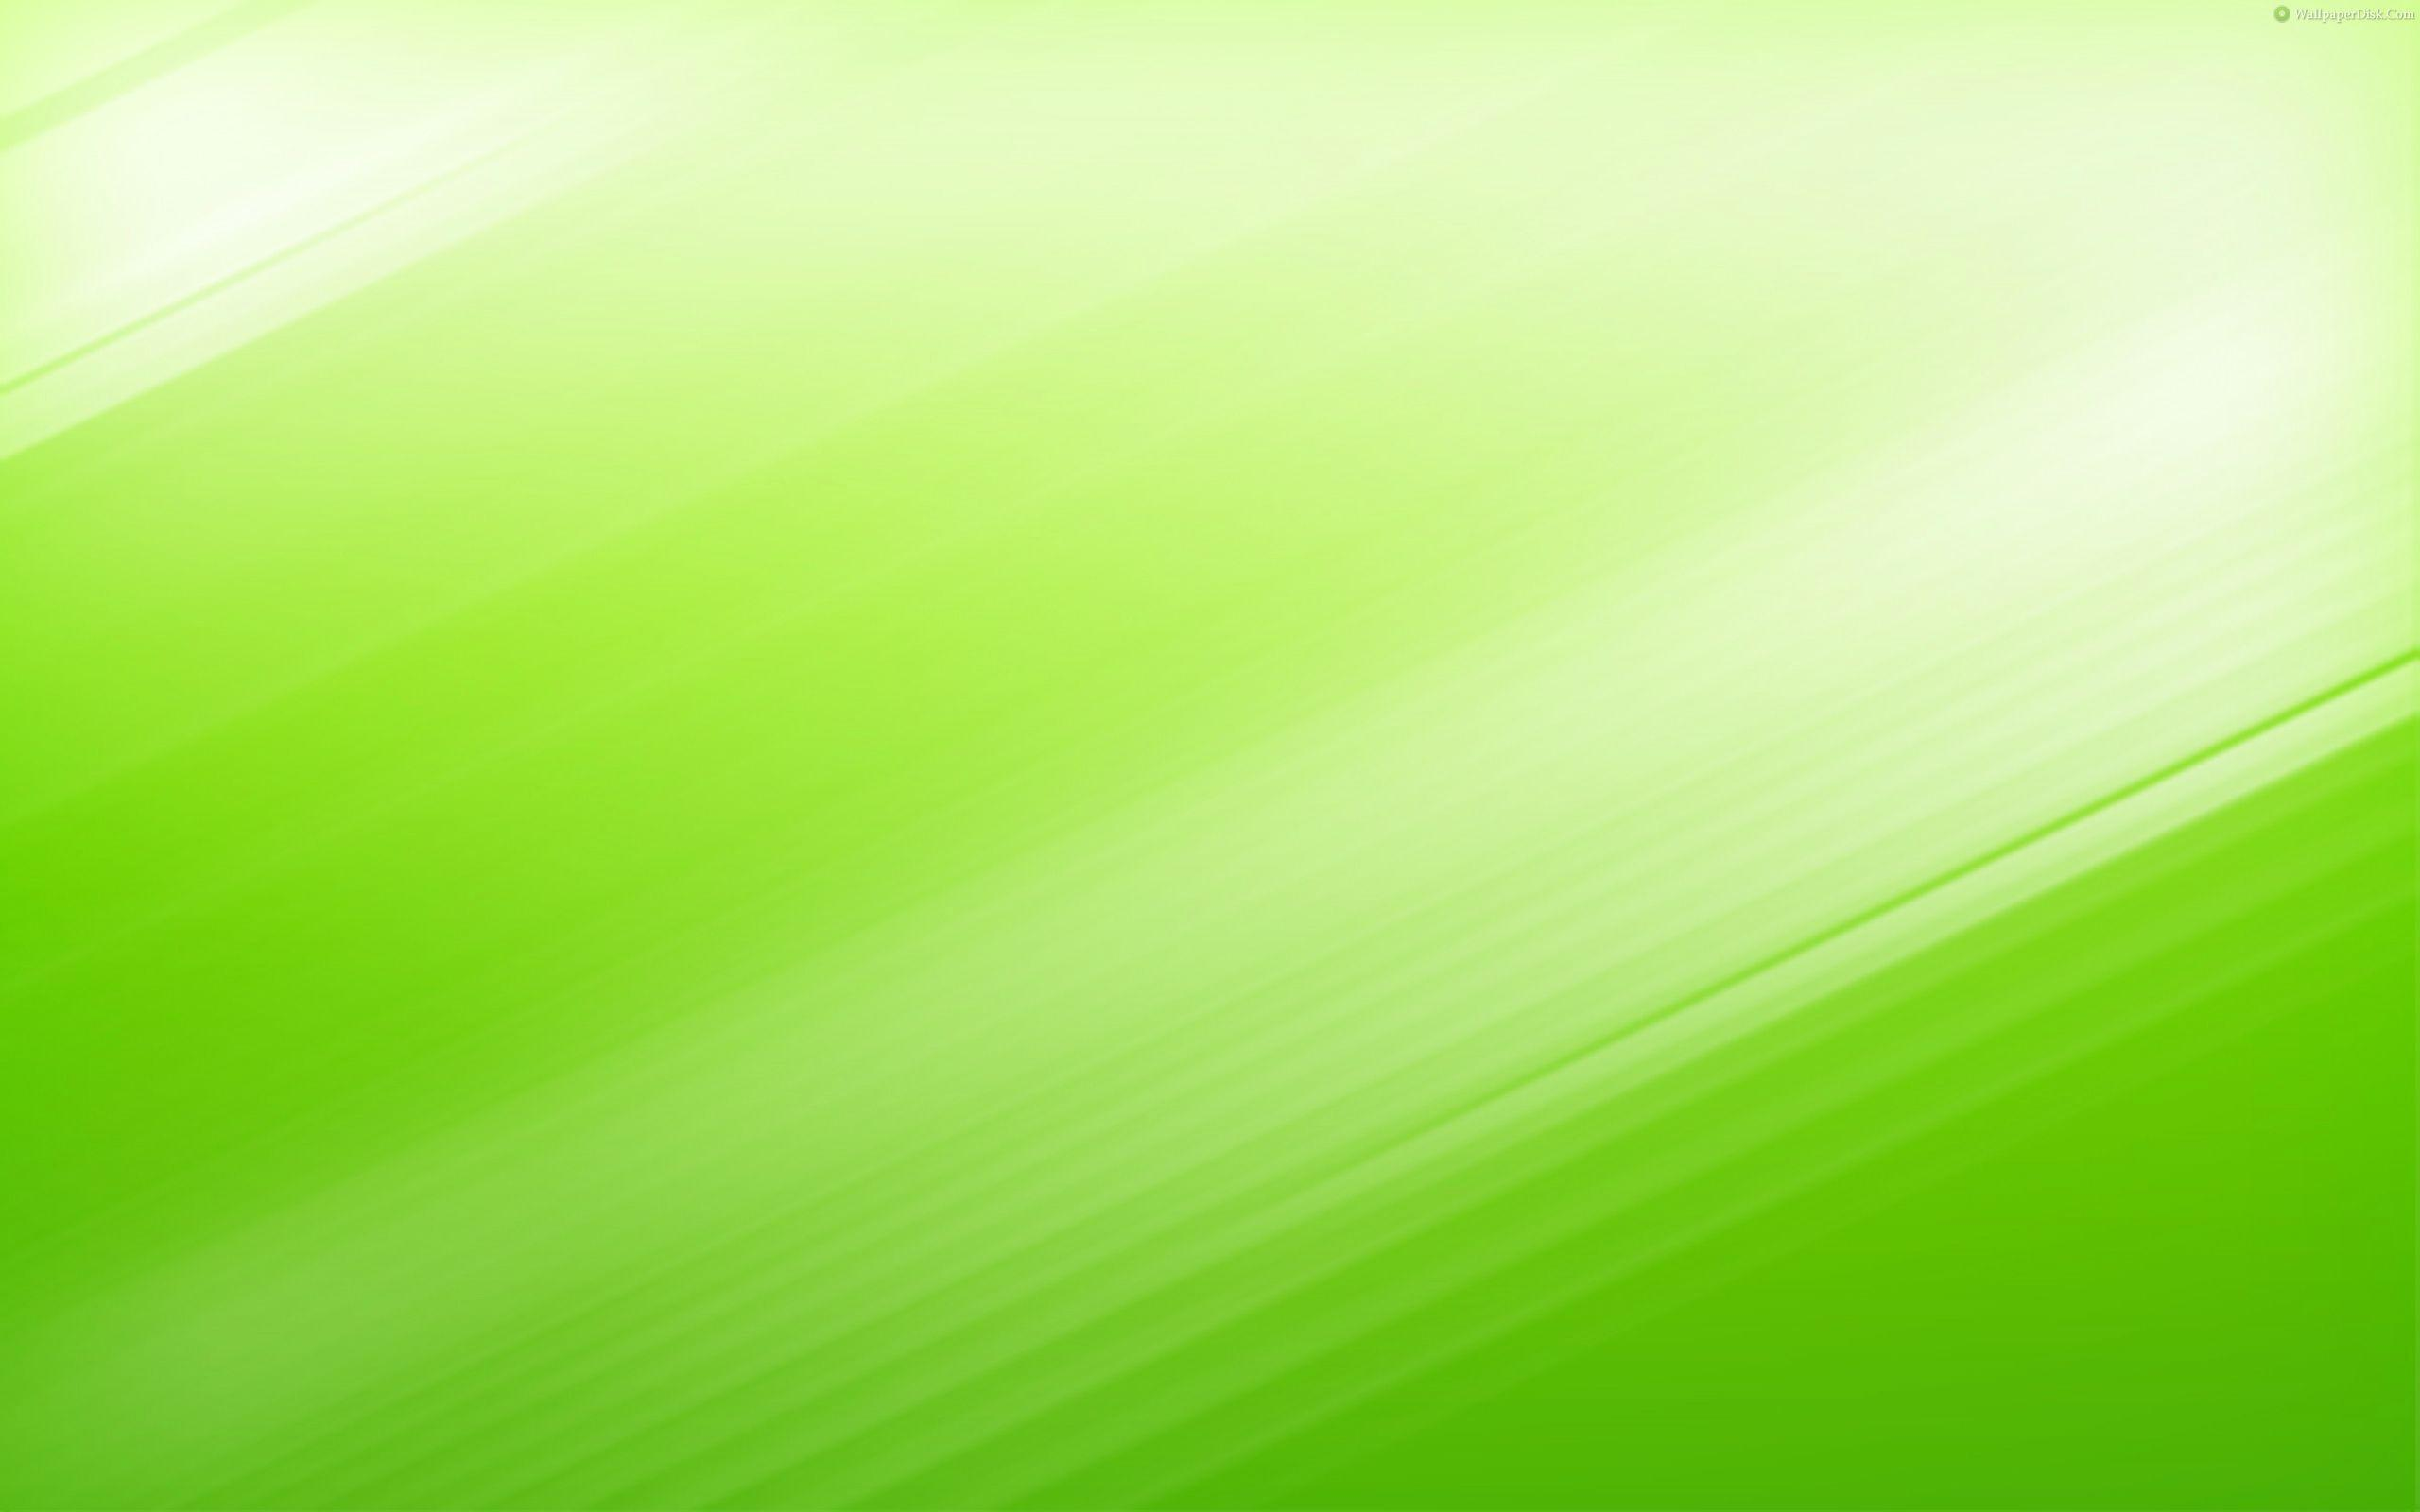 green backgrounds image